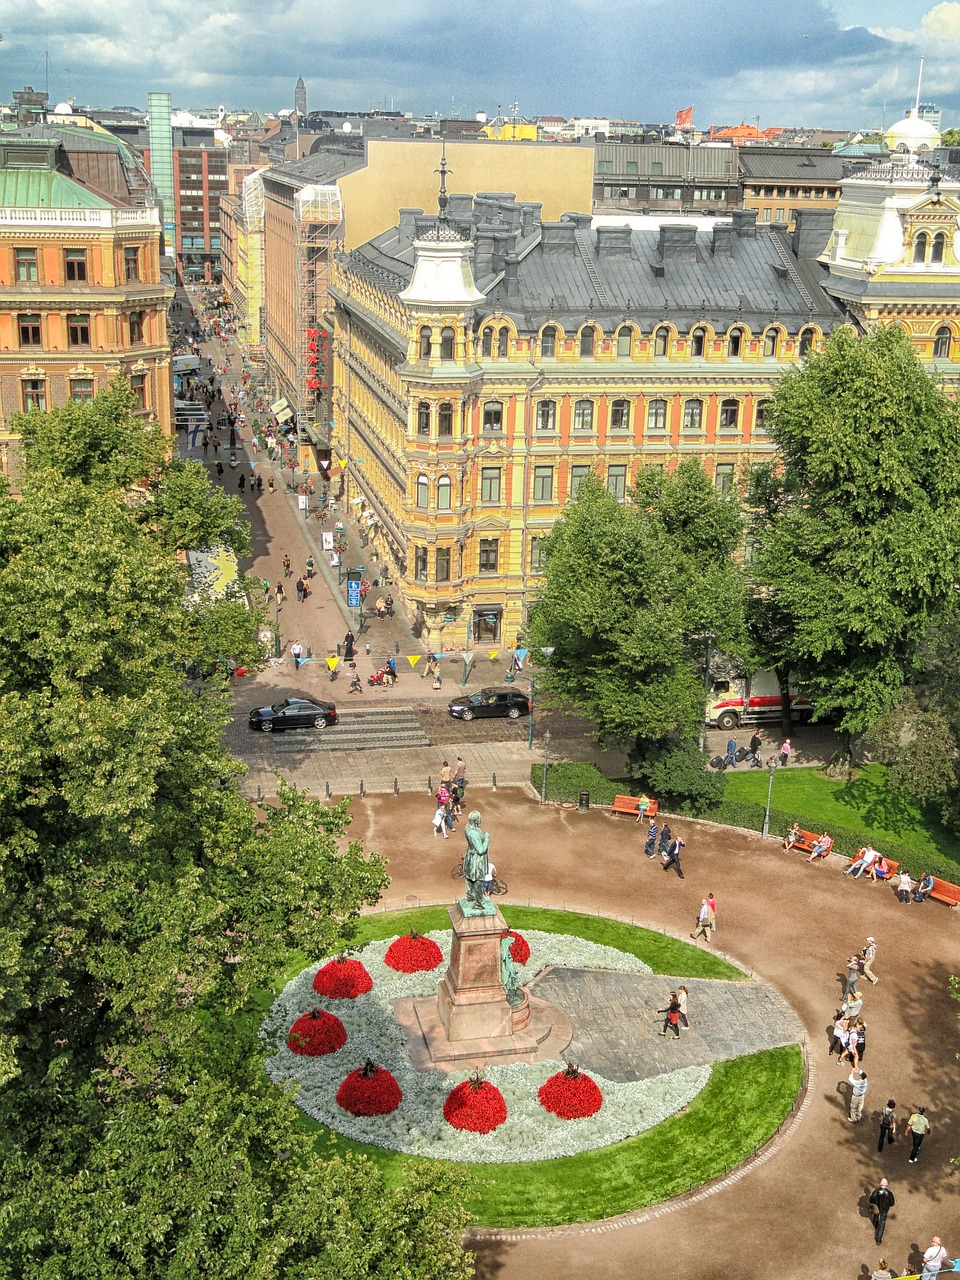 helsinki finland plaza free photo